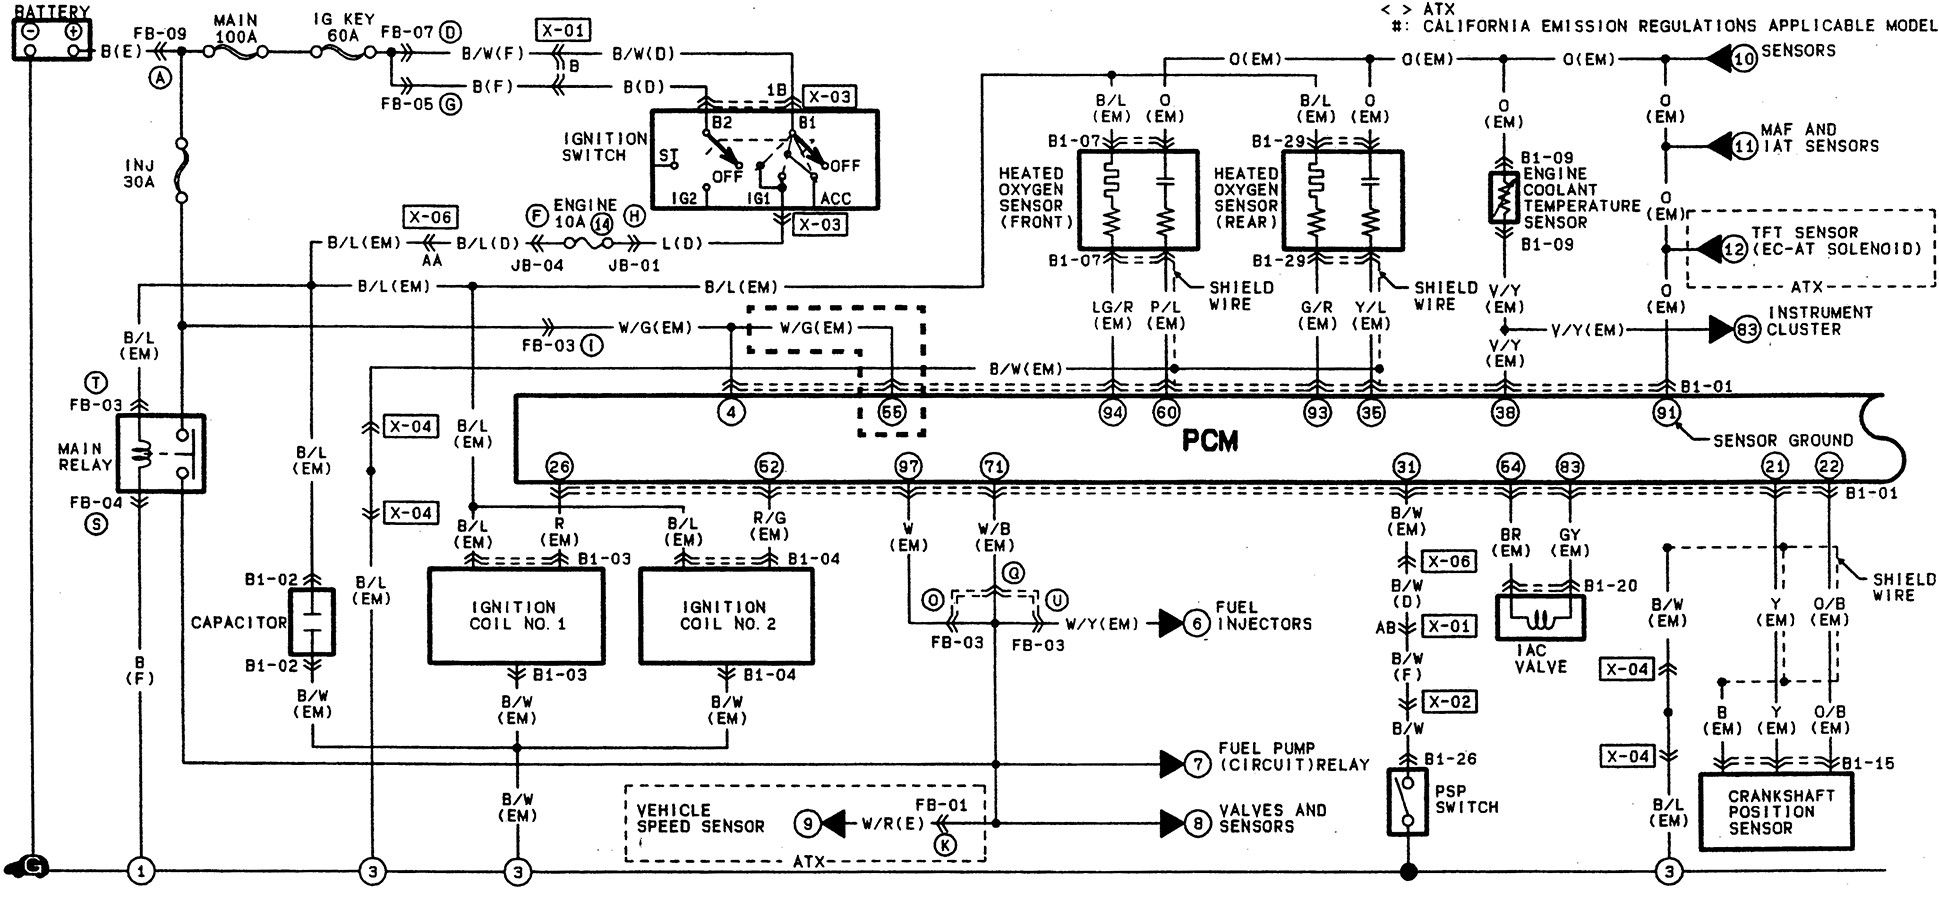 Mazda 323 1993 Wiring Diagram Electrical Schematics 1988 626 Engine Beautiful Positions Pinterest